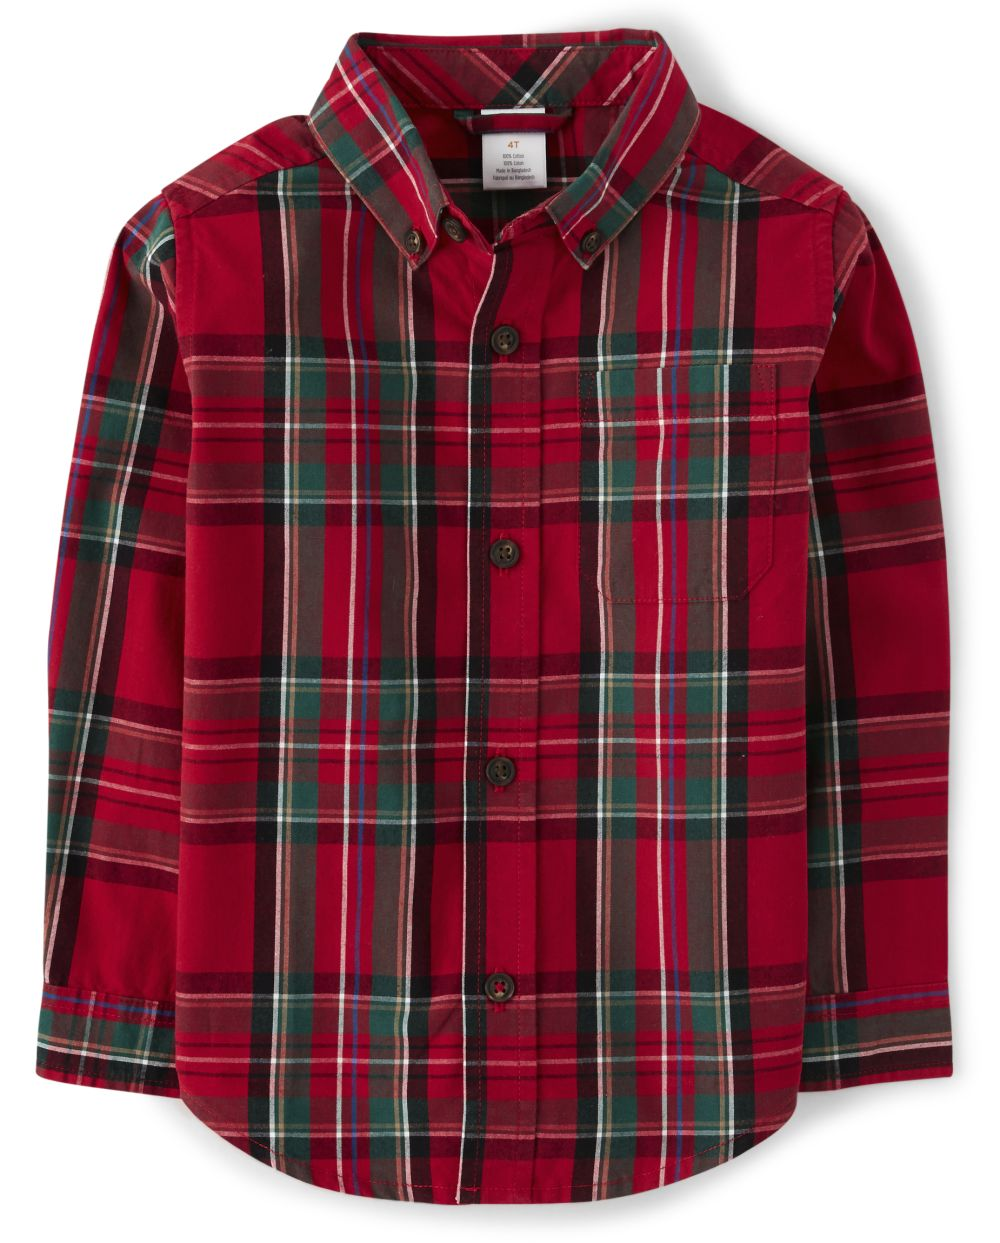 Boys Plaid Button Up Shirt - Picture Perfect